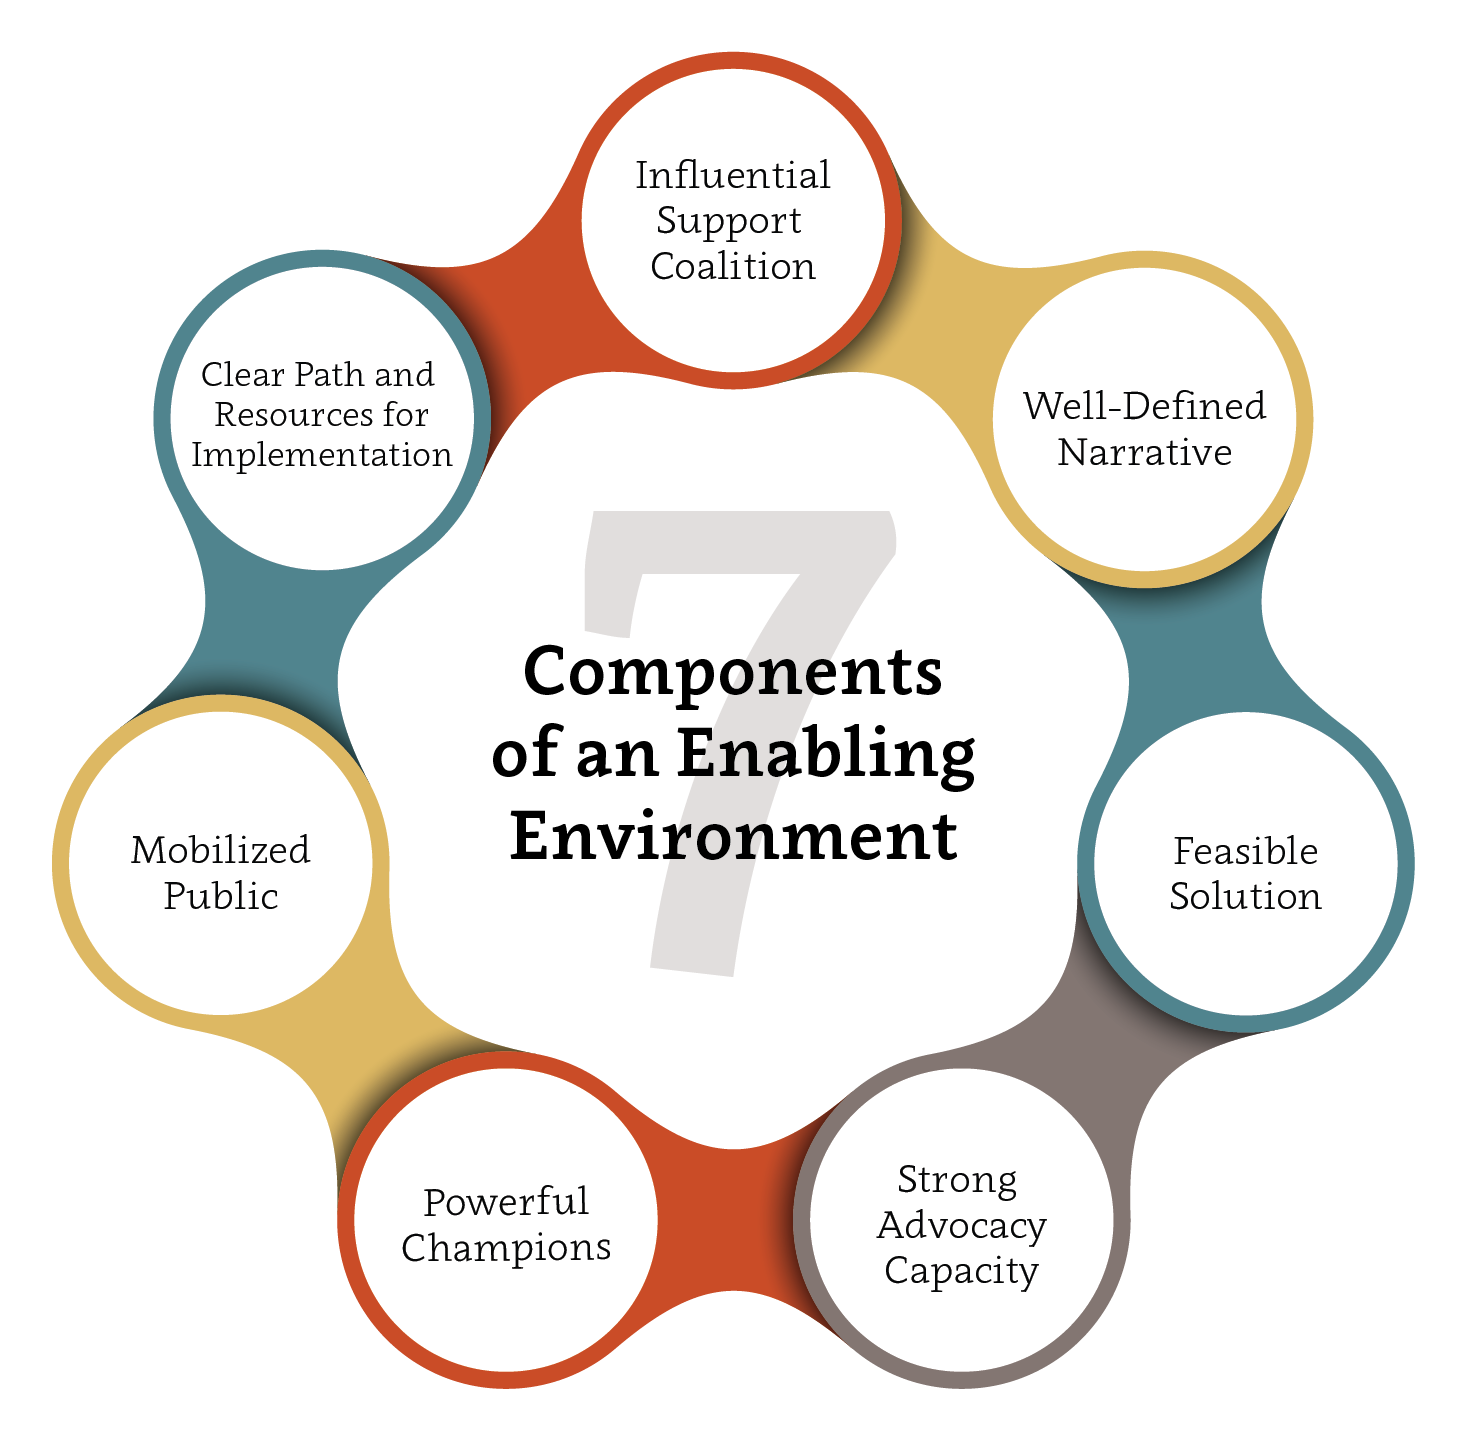 7 Components of an Enabling Environment